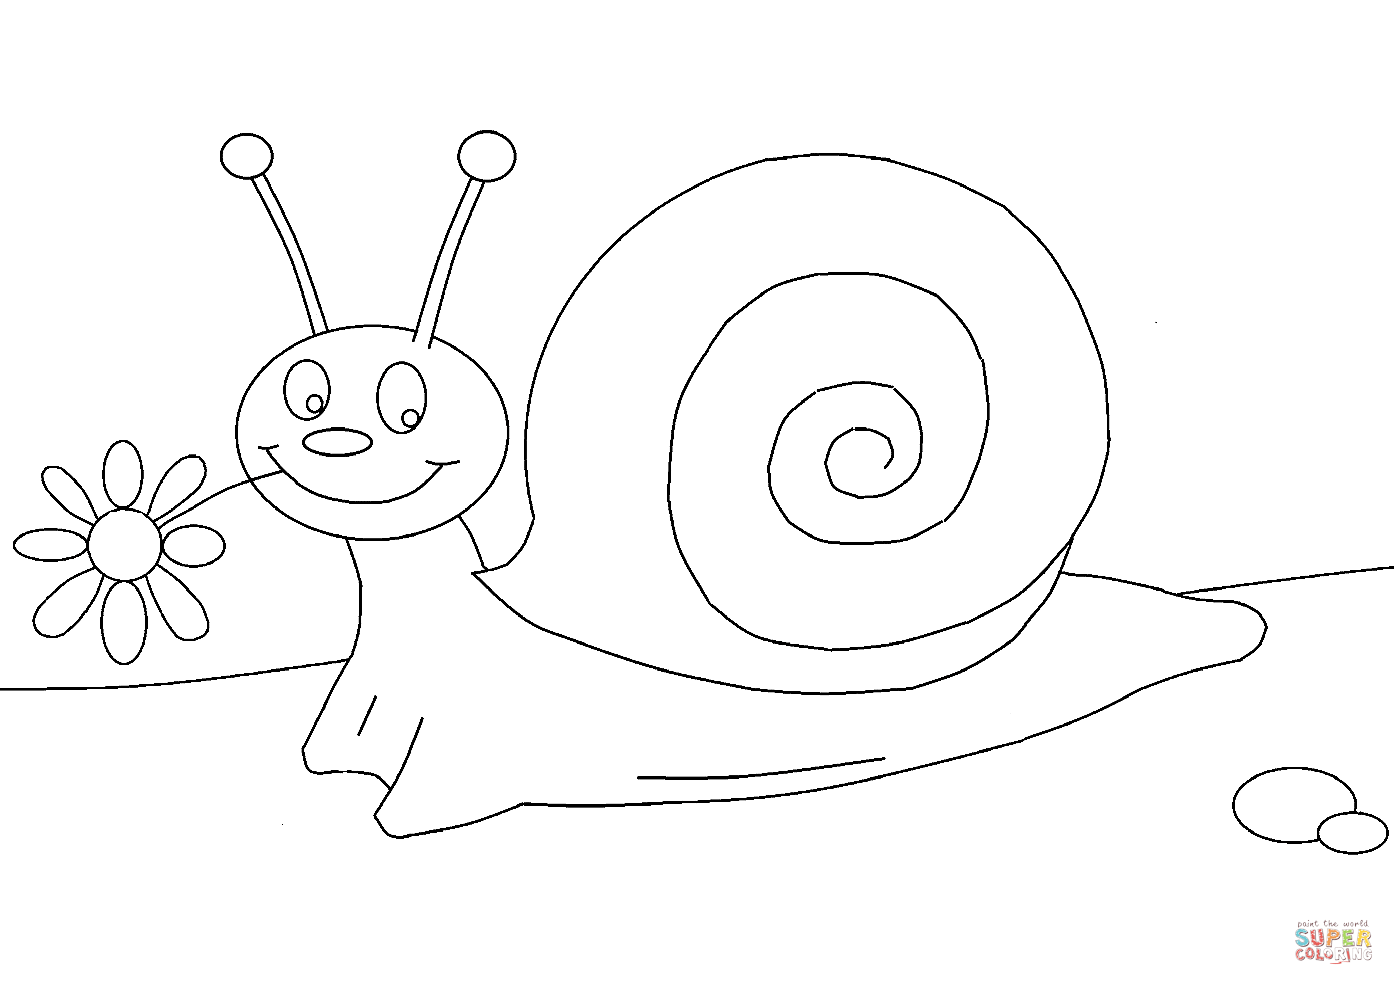 Cartoon Snail Coloring Page